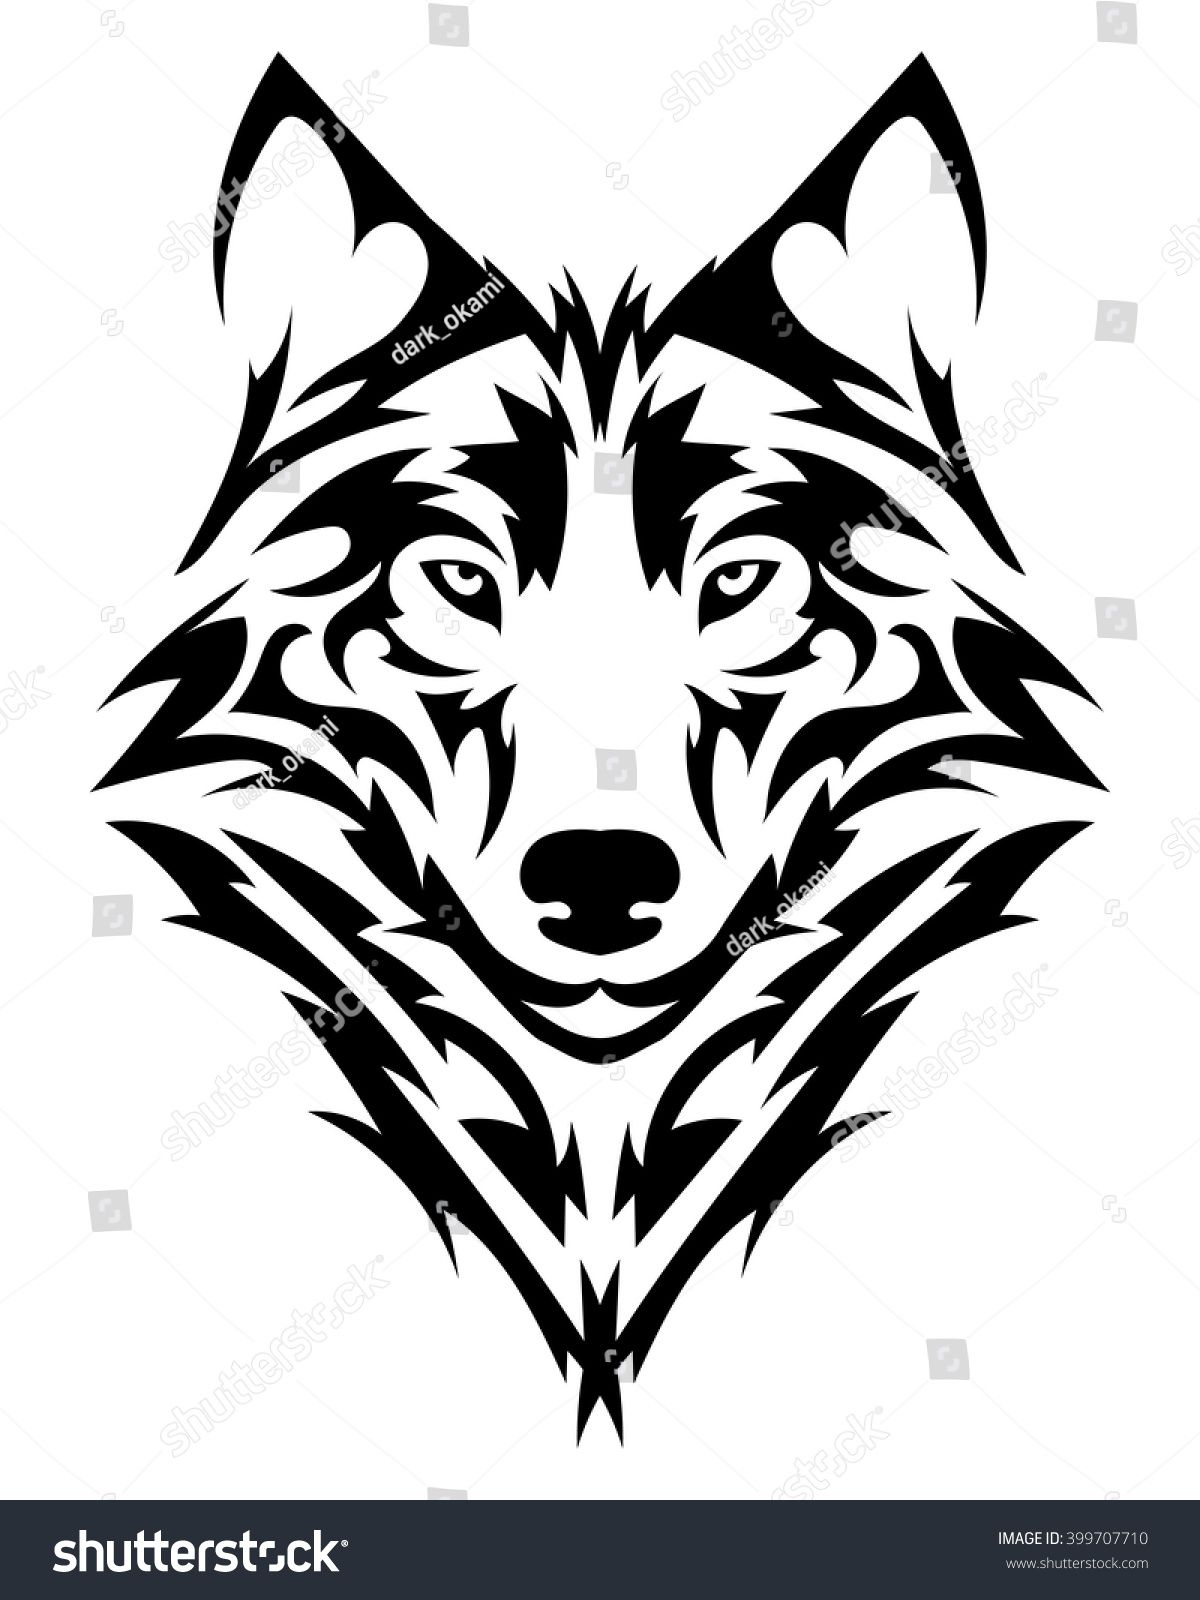 Wolf Vector - Beautiful wolf tattoo.Vector wolf's head as a design element on ...